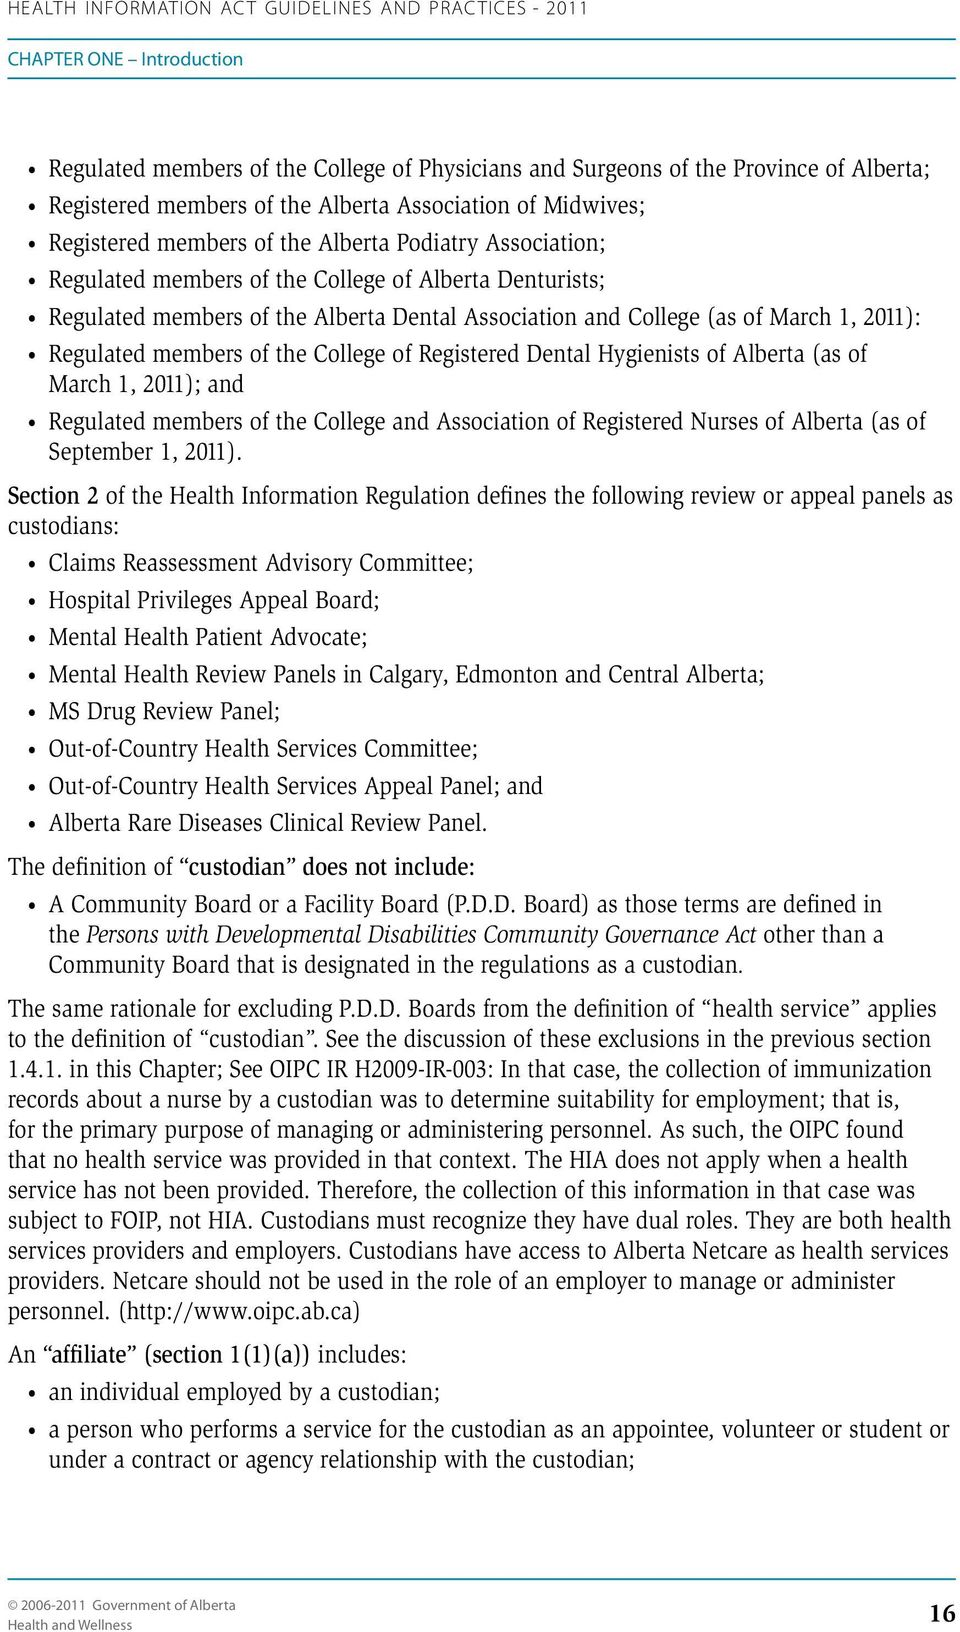 College of Registered Dental Hygienists of Alberta (as of March 1, 2011); and Regulated members of the College and Association of Registered Nurses of Alberta (as of September 1, 2011).